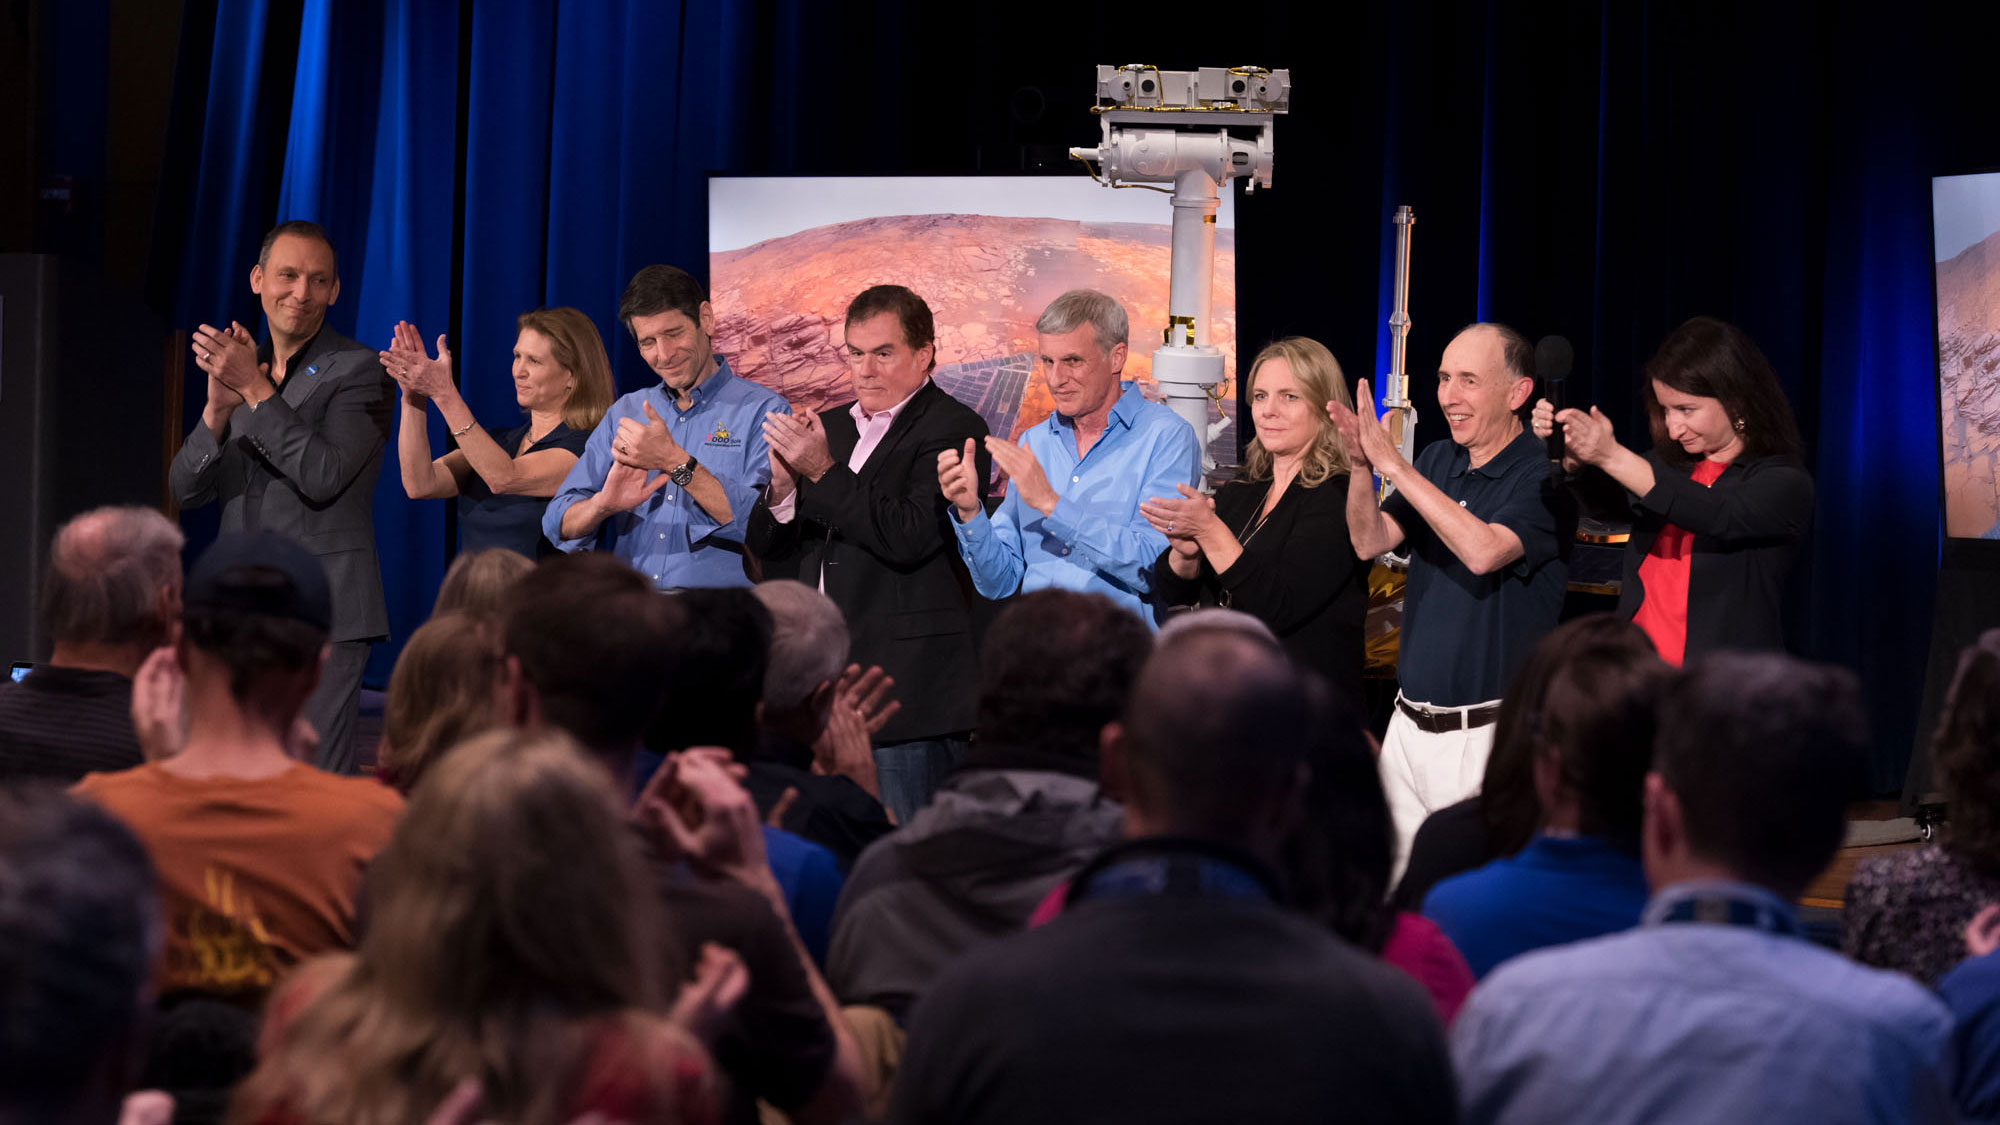 A round of applause at NASA's Jet Propulsion Laboratory in Pasadena, California, for a successful end to the mission of NASA's Opportunity Mars rover on Feb. 13, 2019.